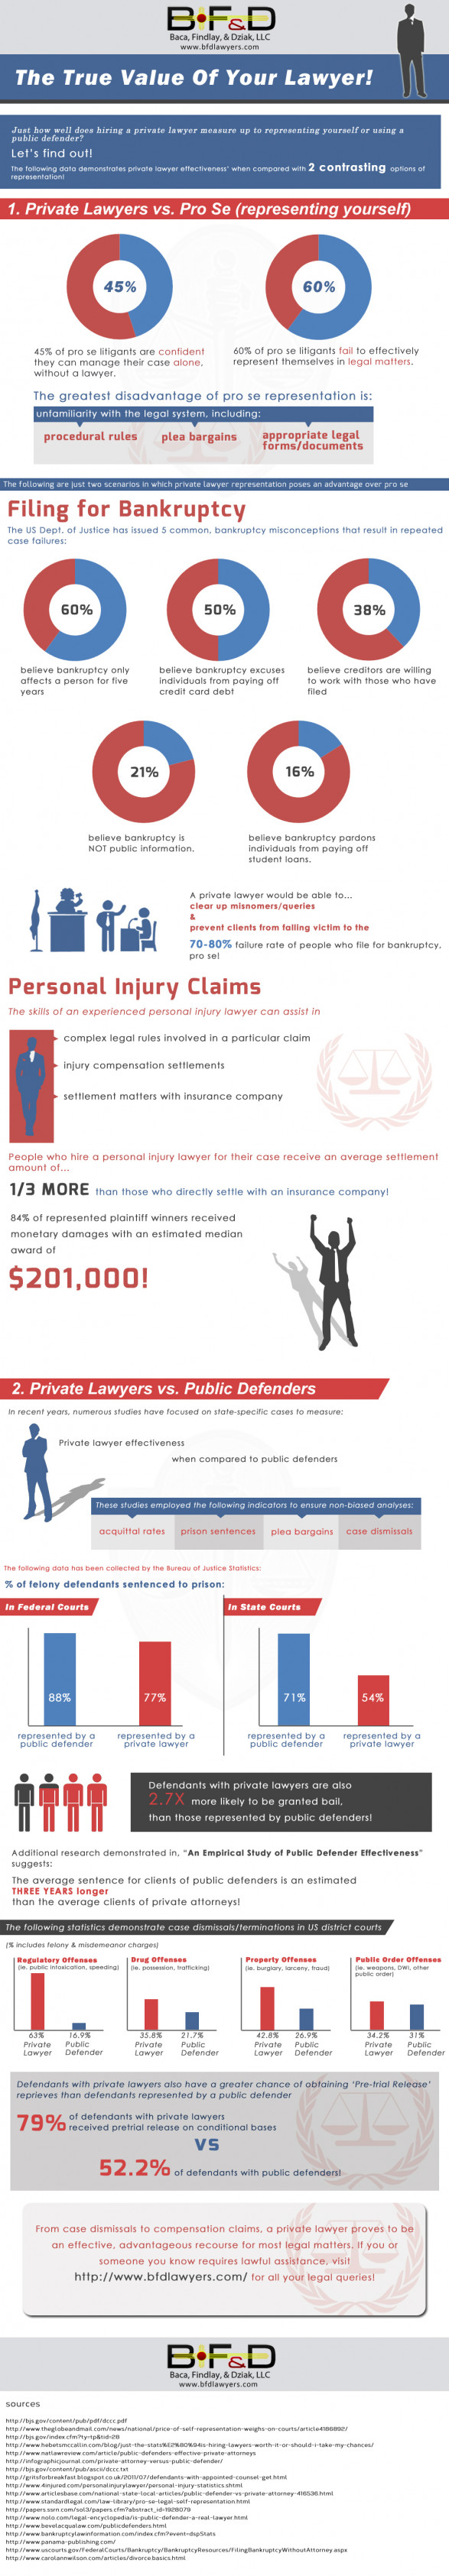 The True Value of Your Lawyer!